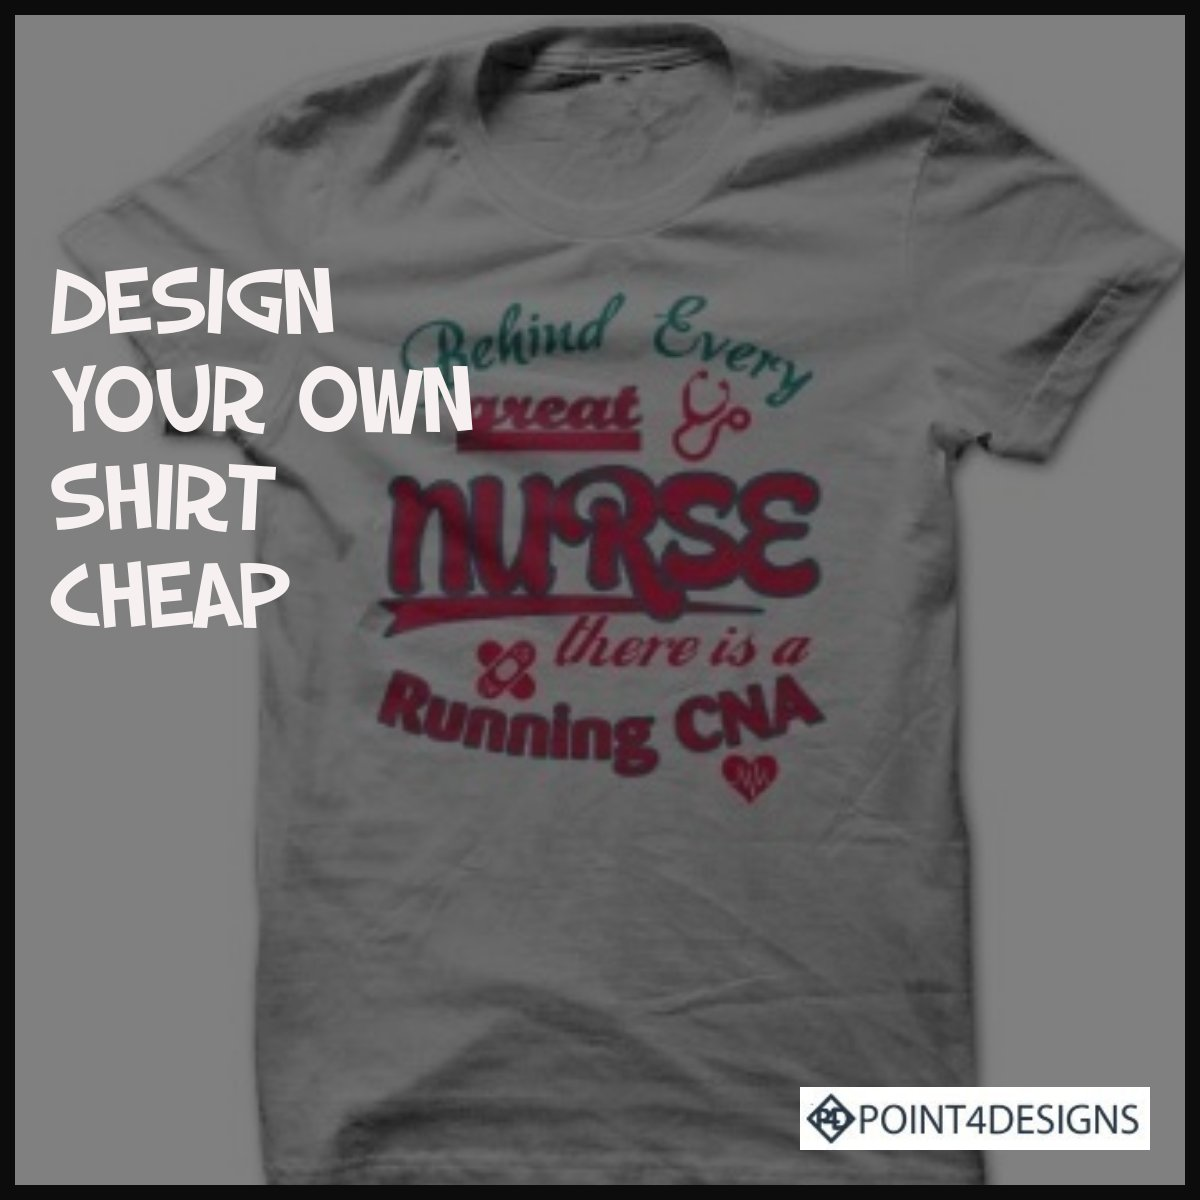 Shirt Design Website Cheap | Design Your Own Shirt Cheap No Minimum Fomrad Fashion Lifestyle